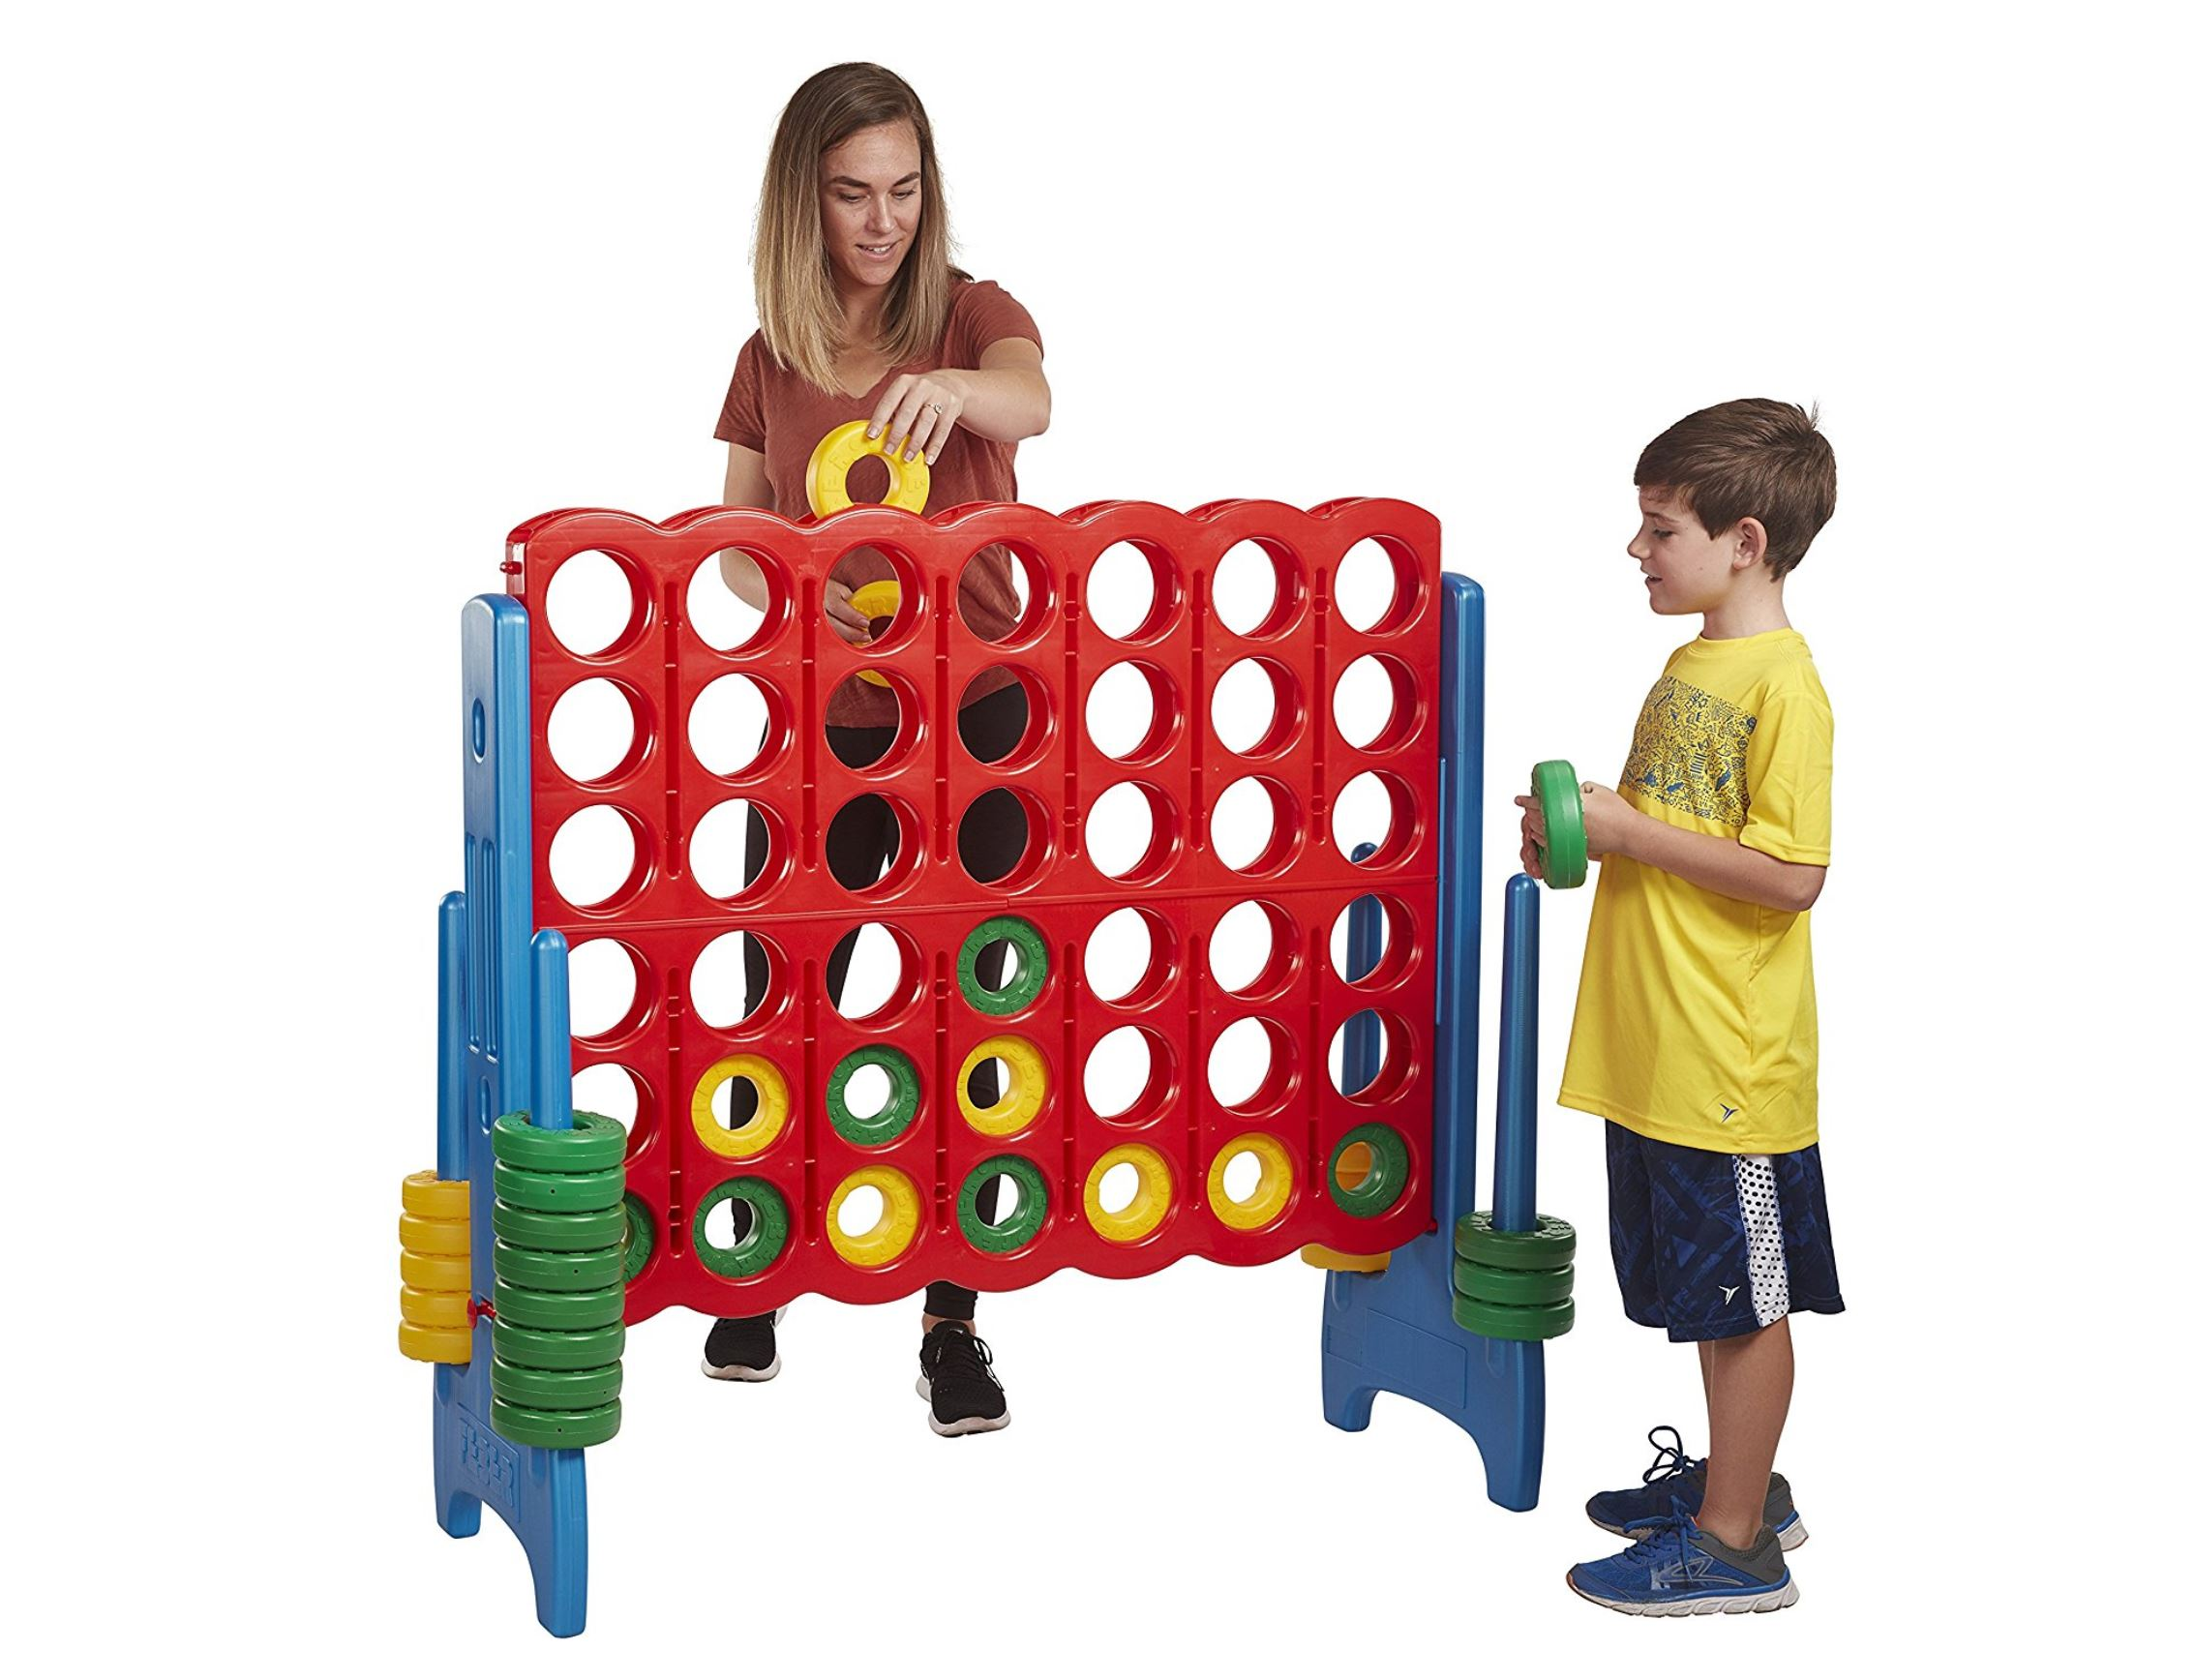 Jumbo Connect 4 - Delray Beach - Midway Party Games 786-423-8759